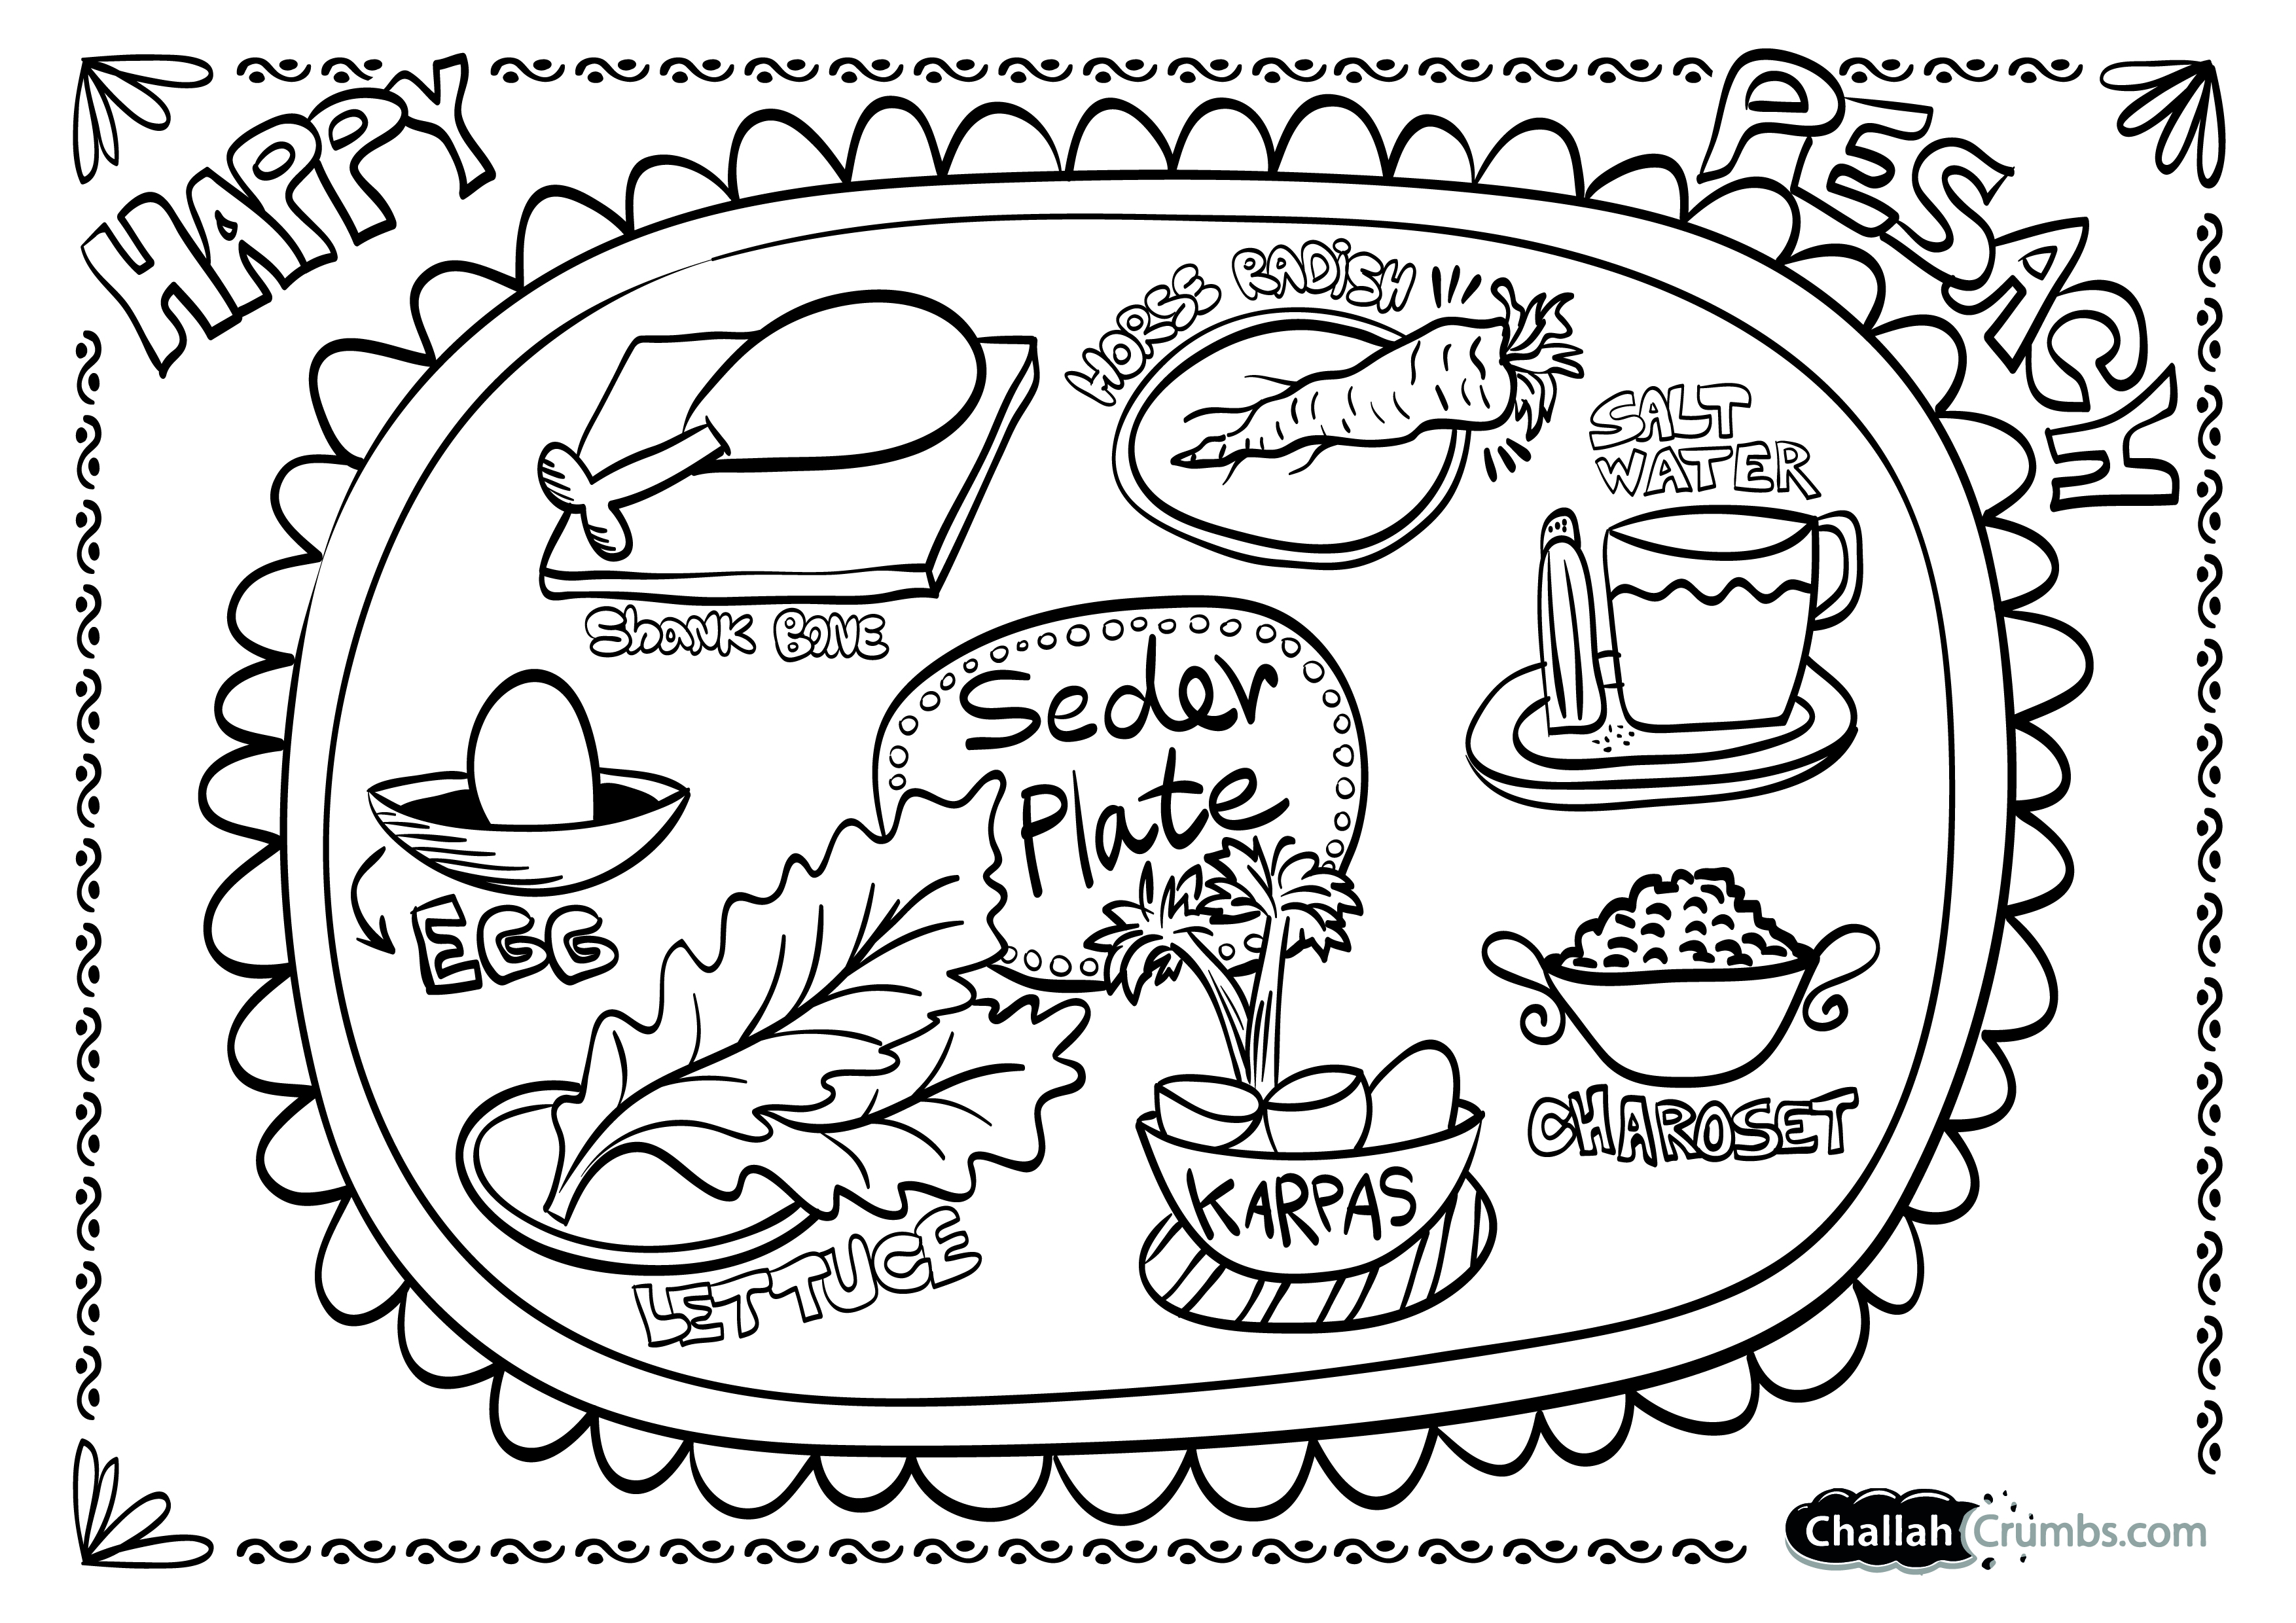 Passover Coloring Pages Free Printable At Getdrawings Free Download